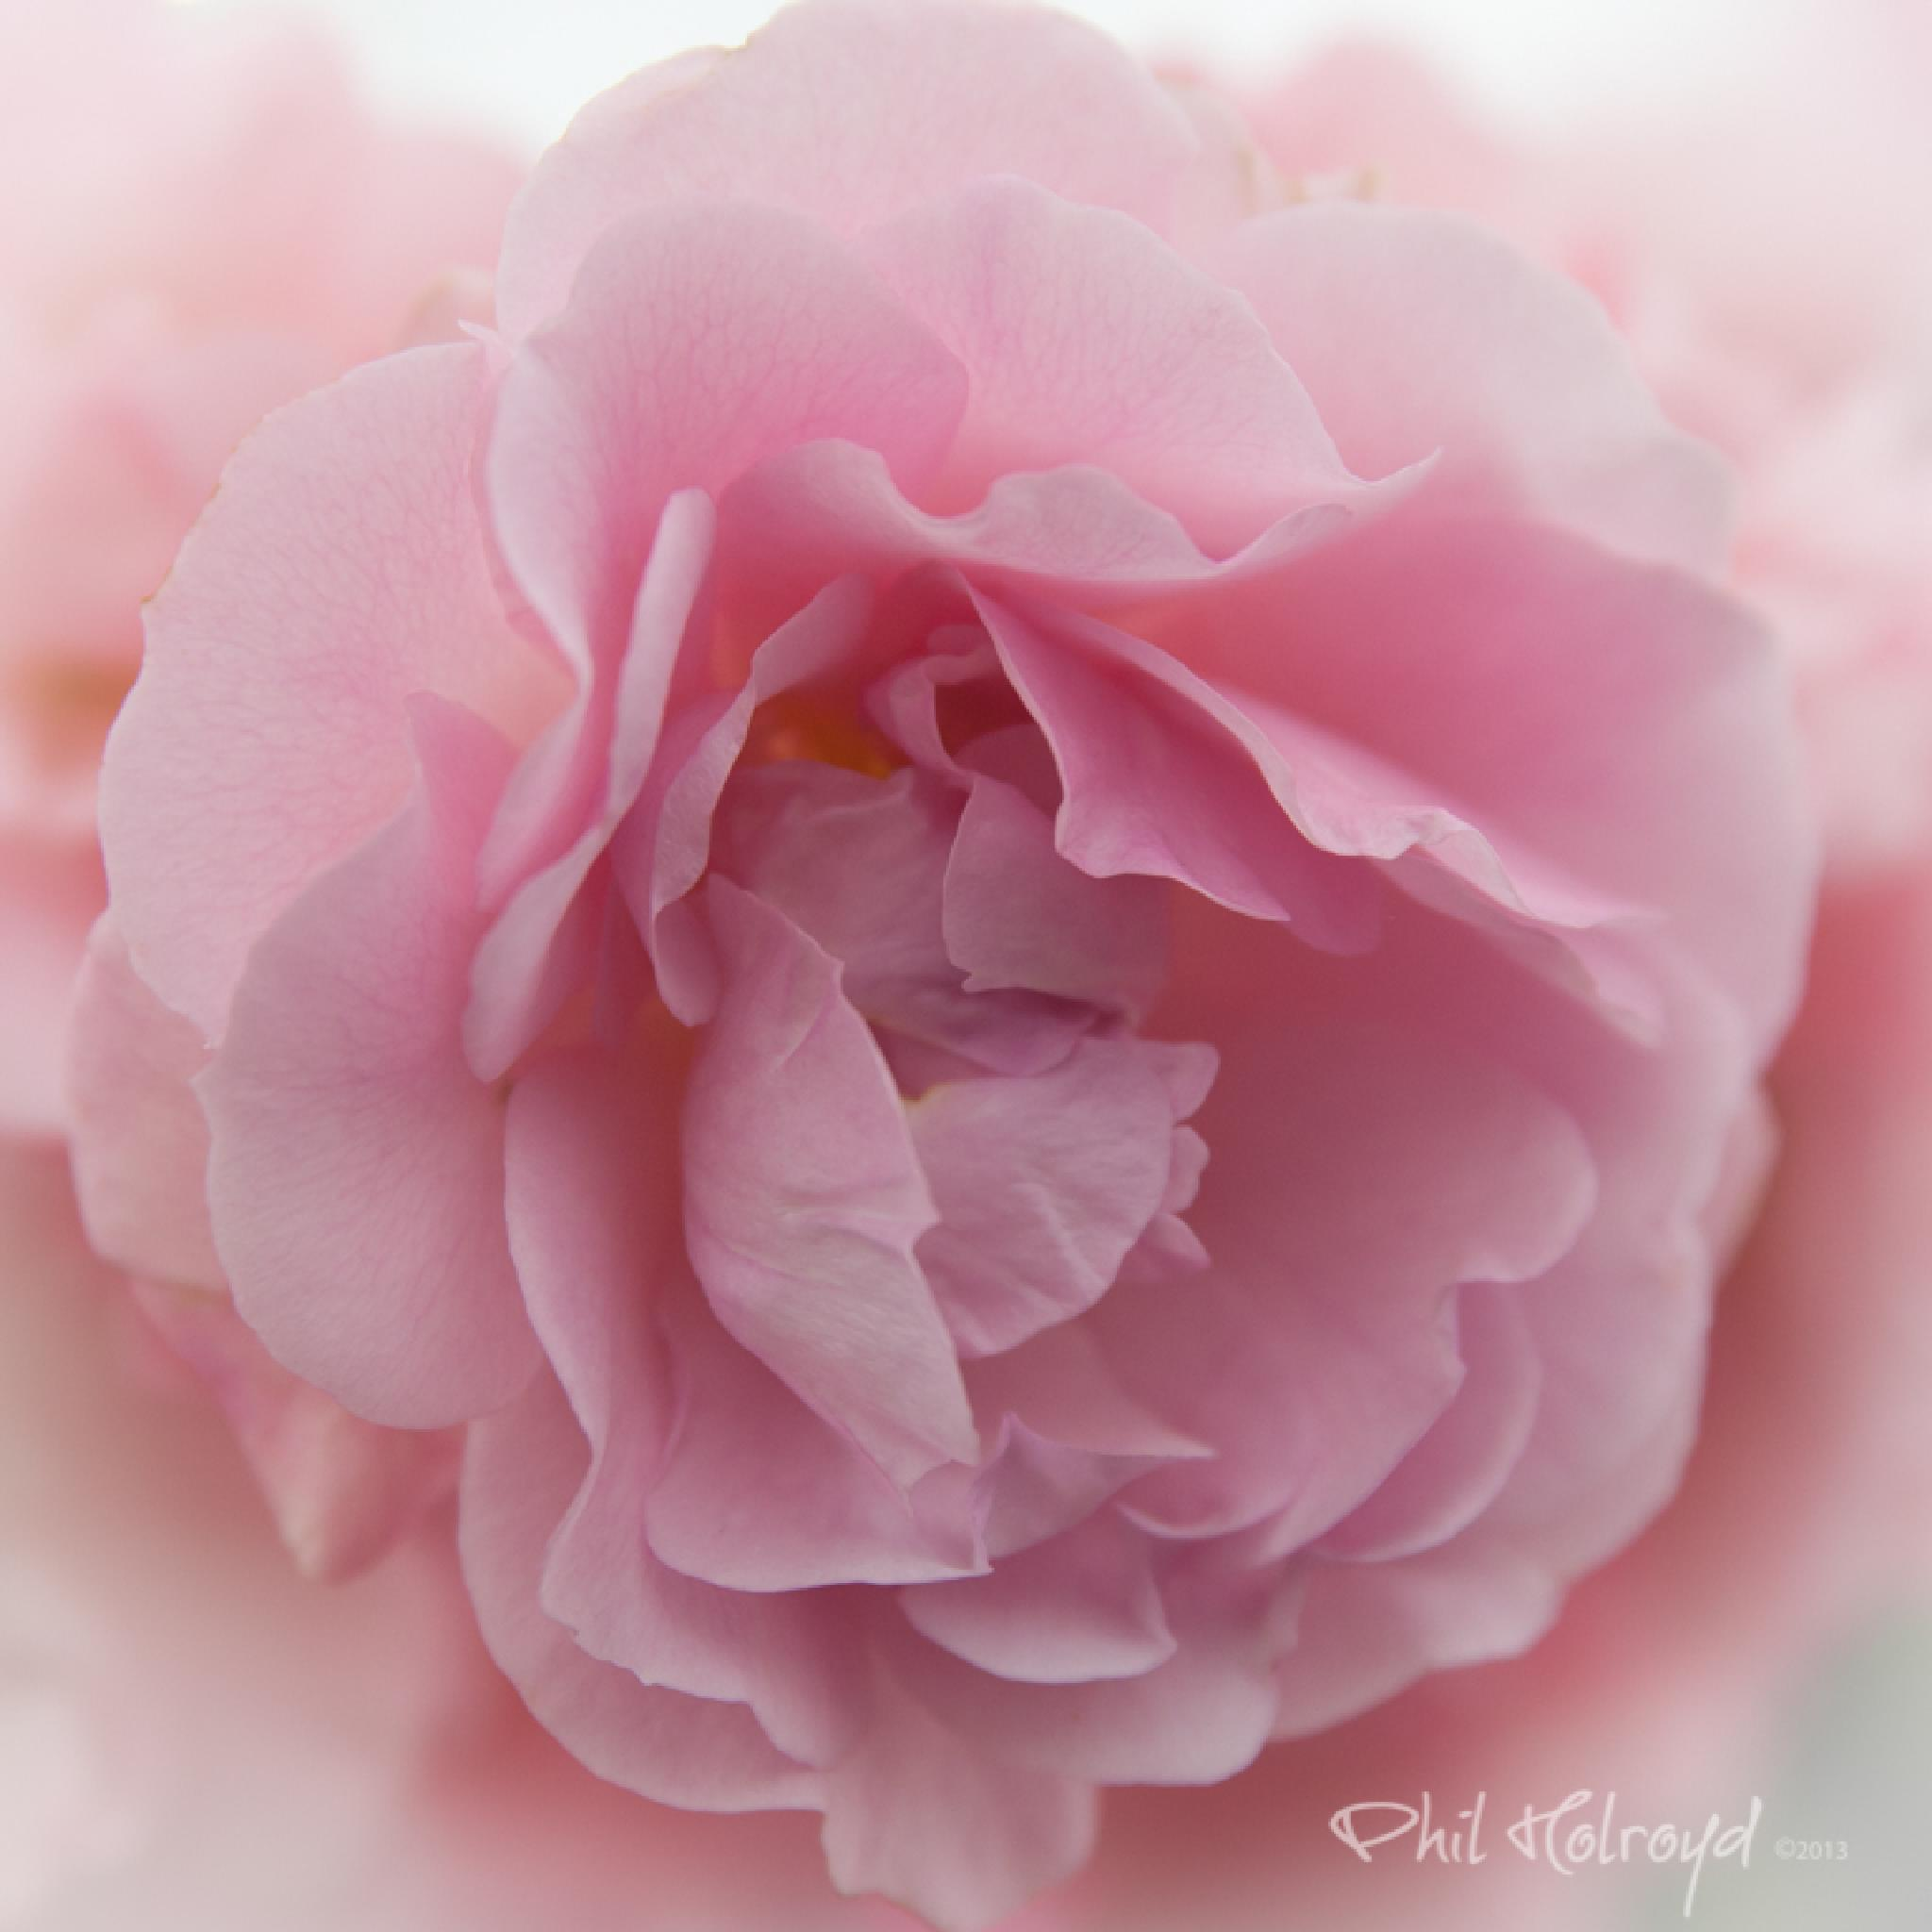 Pink Rose by Phil